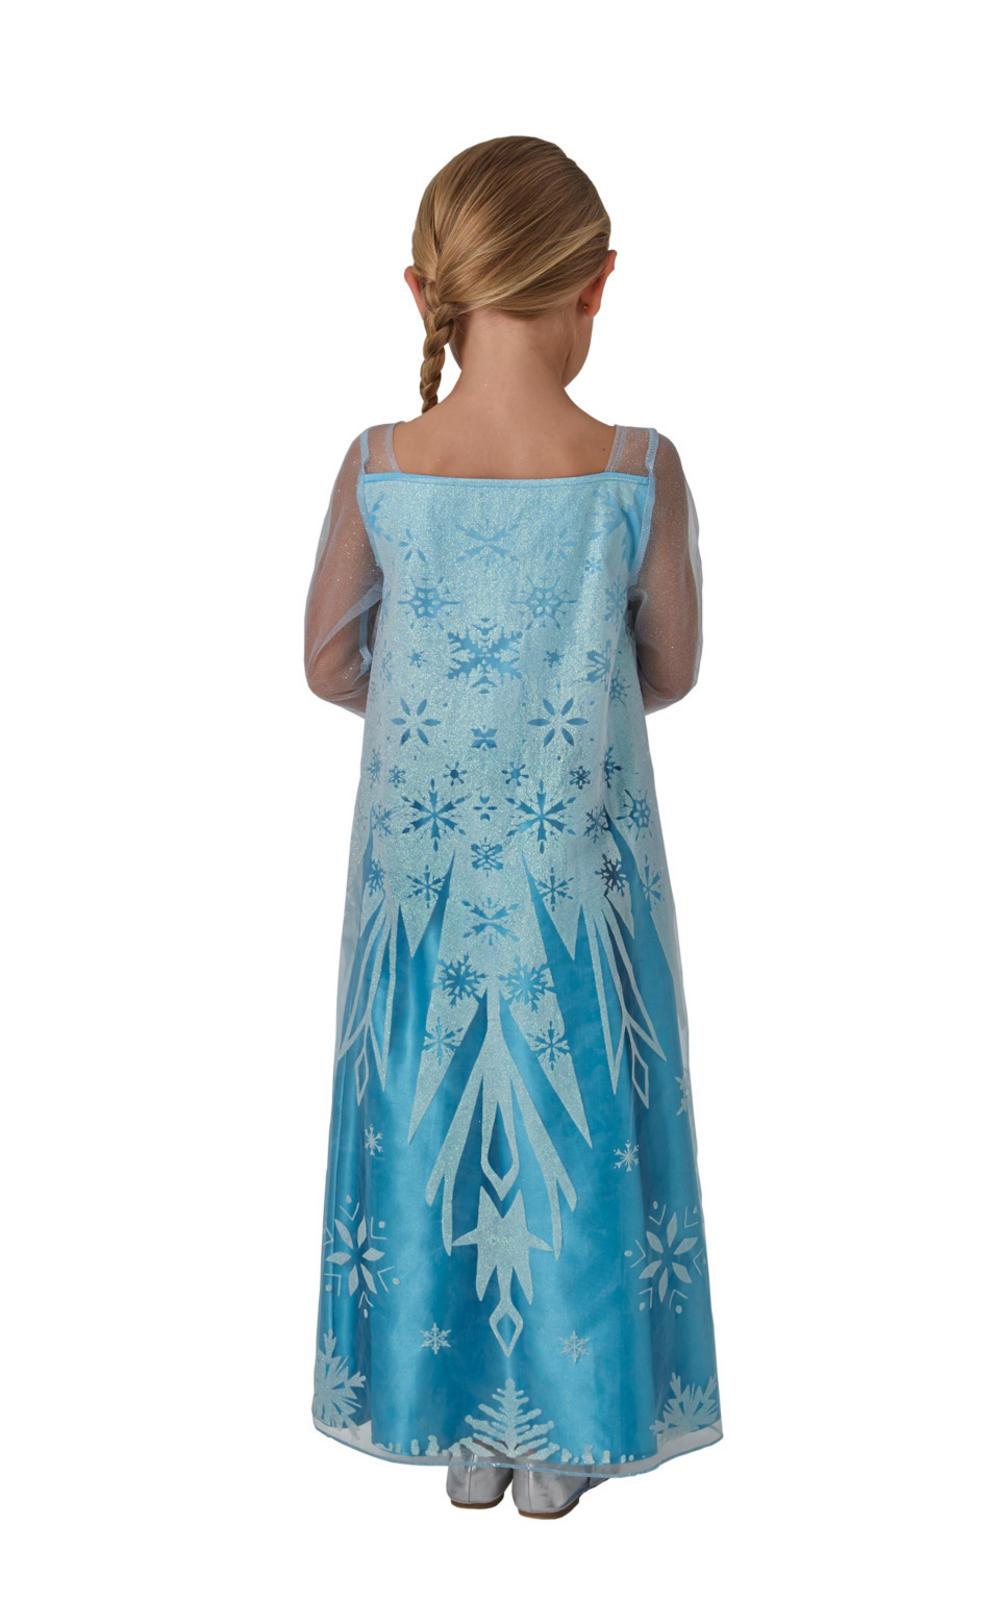 ELSA & ANNA UK Girls Party Outfit Fancy Dress Snow Queen Princess Halloween Costume Cosplay Dress FBA-ANNA1. £ Prime. Only 7 left in stock - order soon. out of 5 stars AmzBarley Girls Snow Queen Elsa Costume Kids Princess Dress up Halloween Party Fancy Dress with Hooded Cloak.